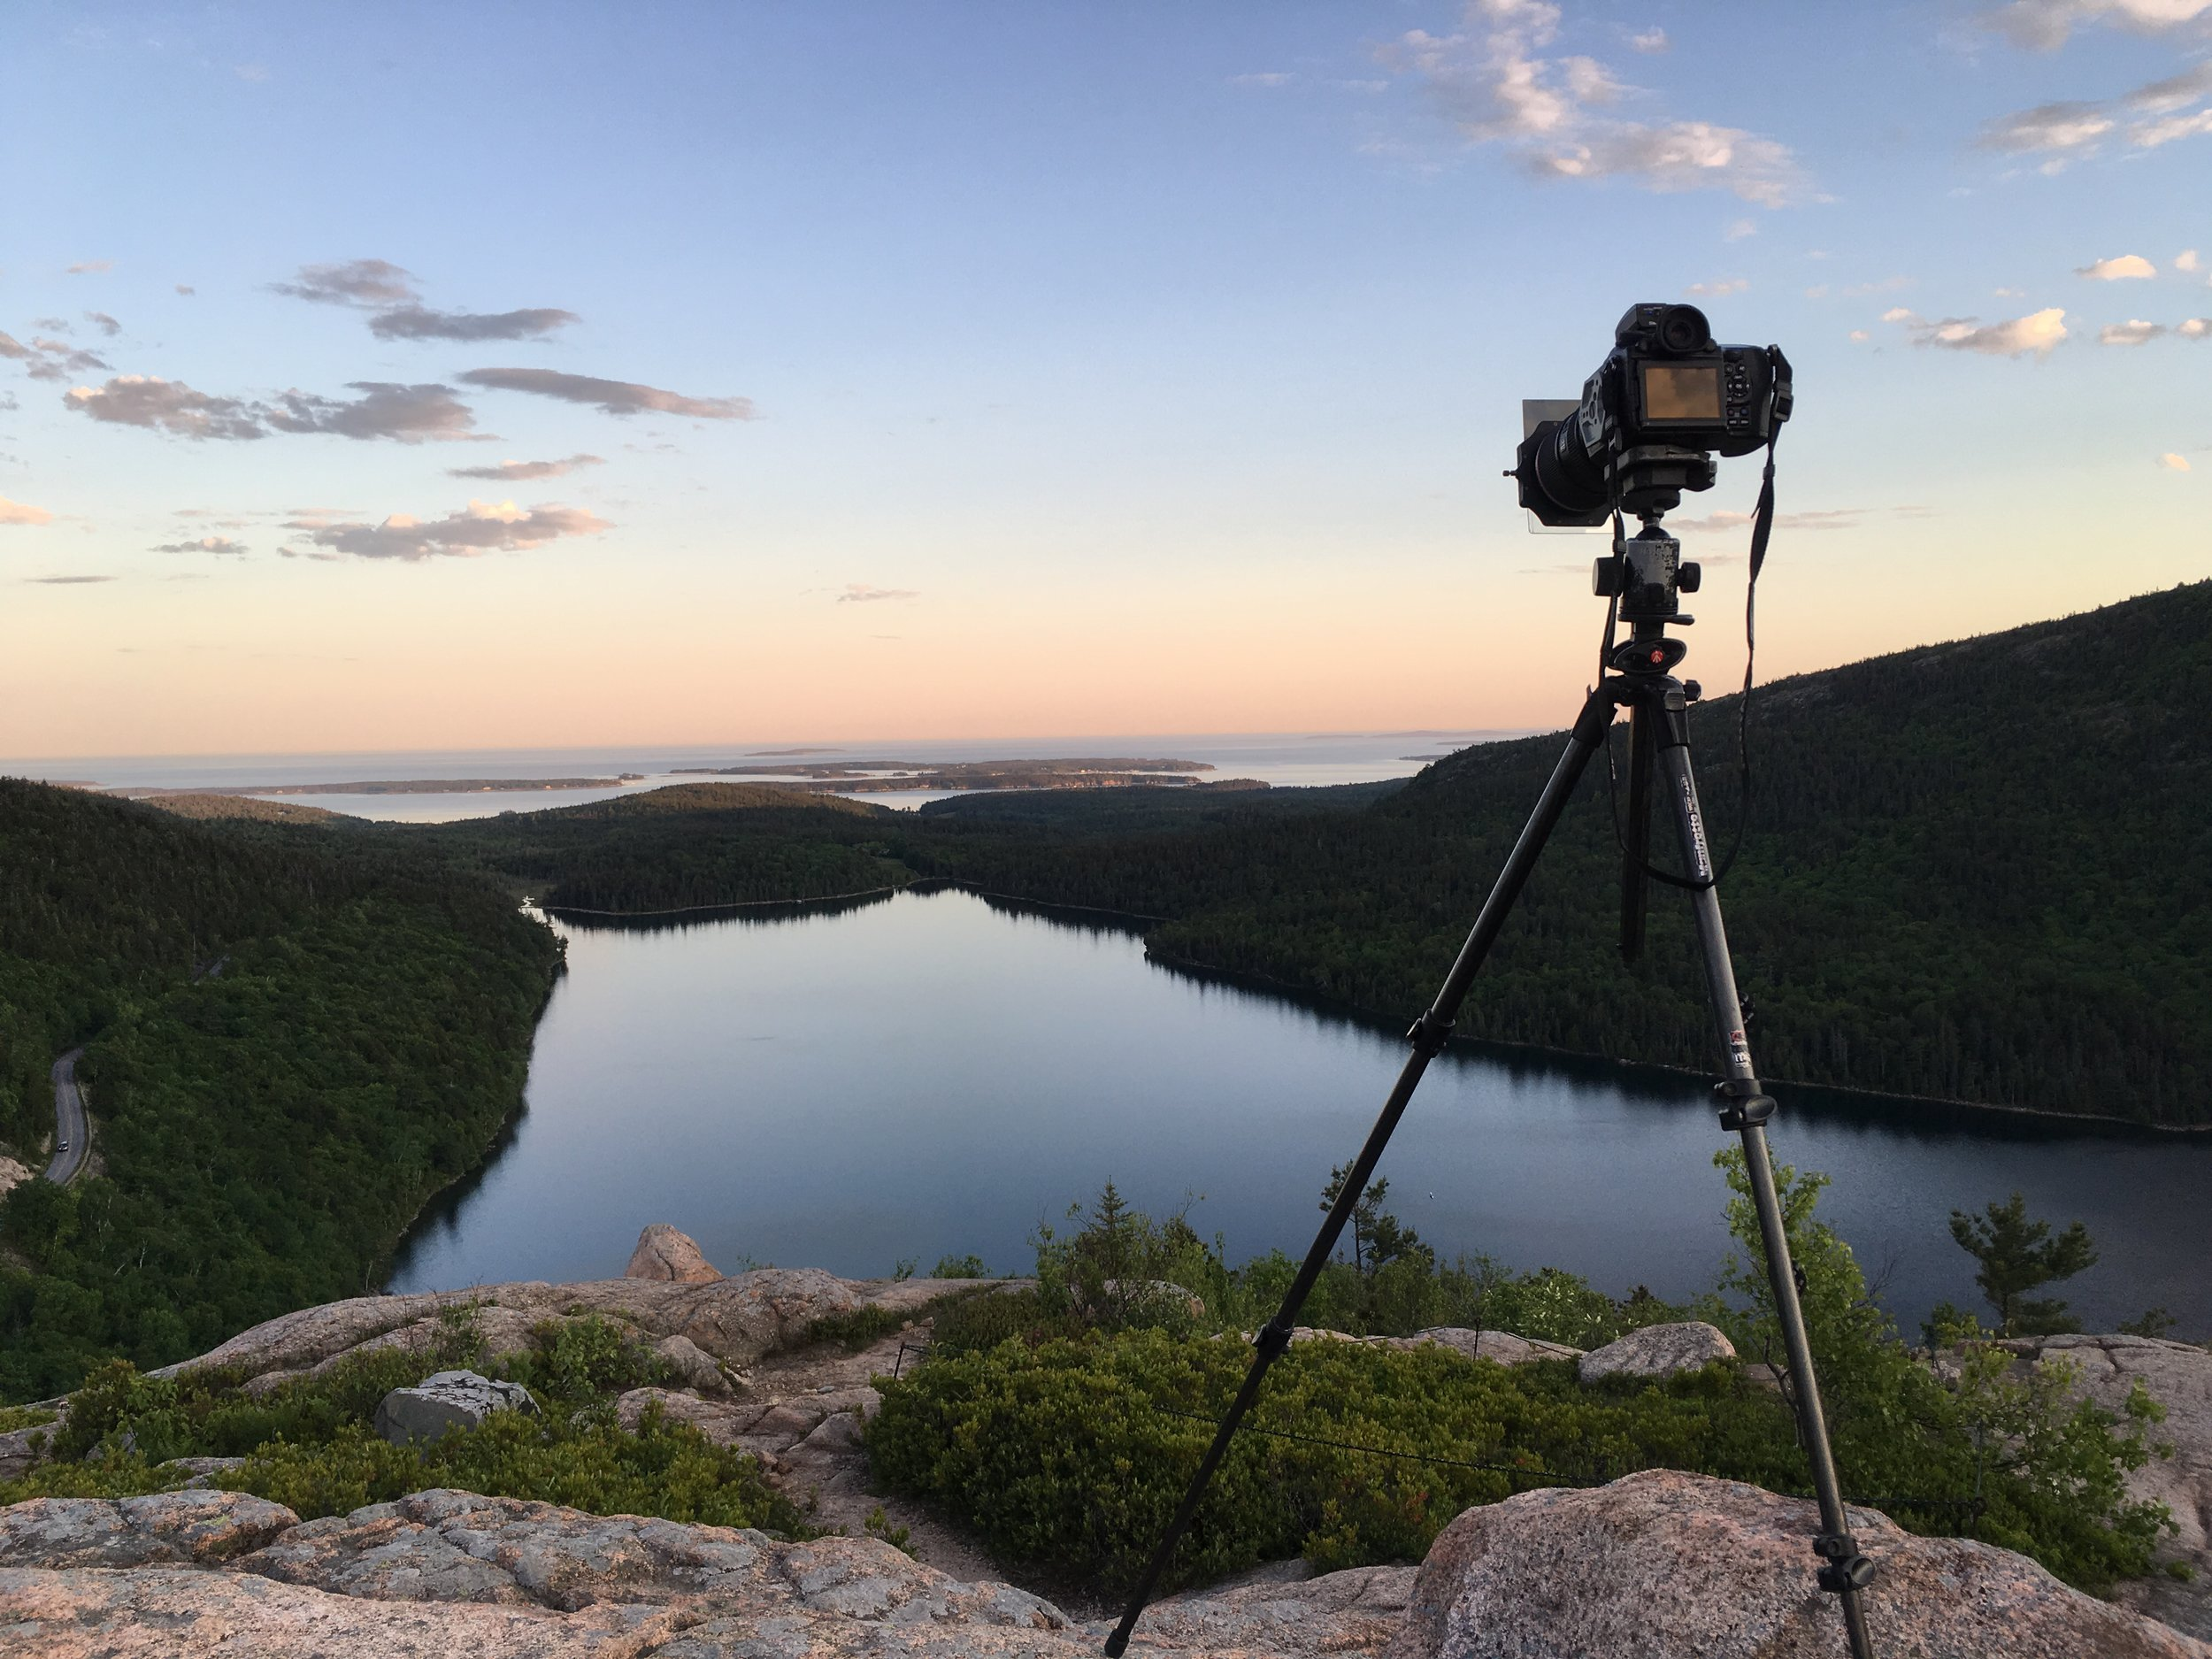 The Manfrotto 190CXPRO3 carbon fiber tripod and Pentax 645Z in action on top of Bubble Mountain